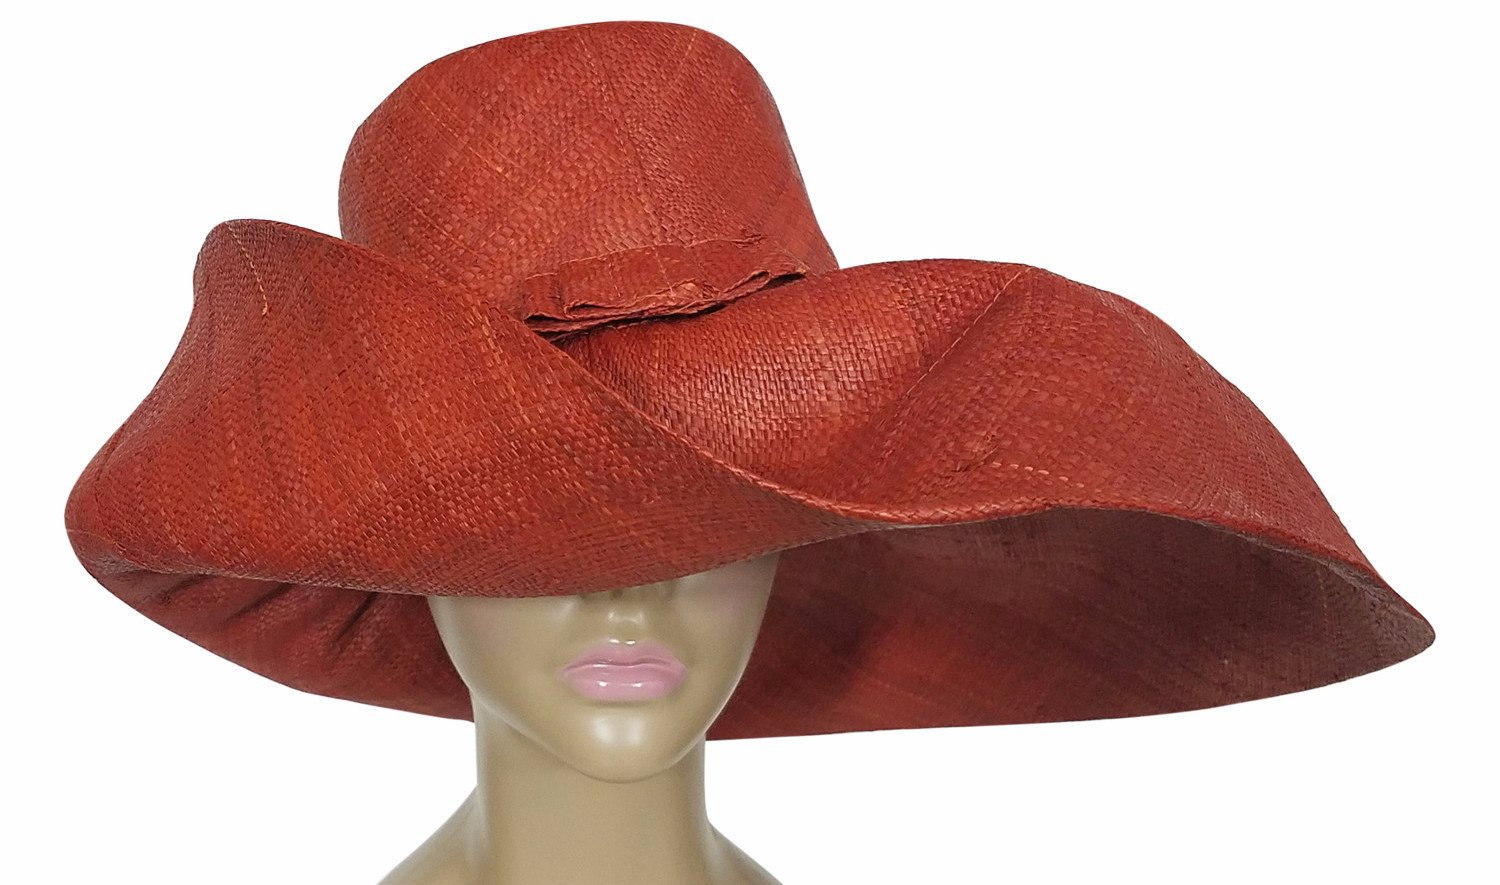 Zuwena: Authentic African Hand Made Burnt Orange Madagascar Big Brim Raffia Sun Hat